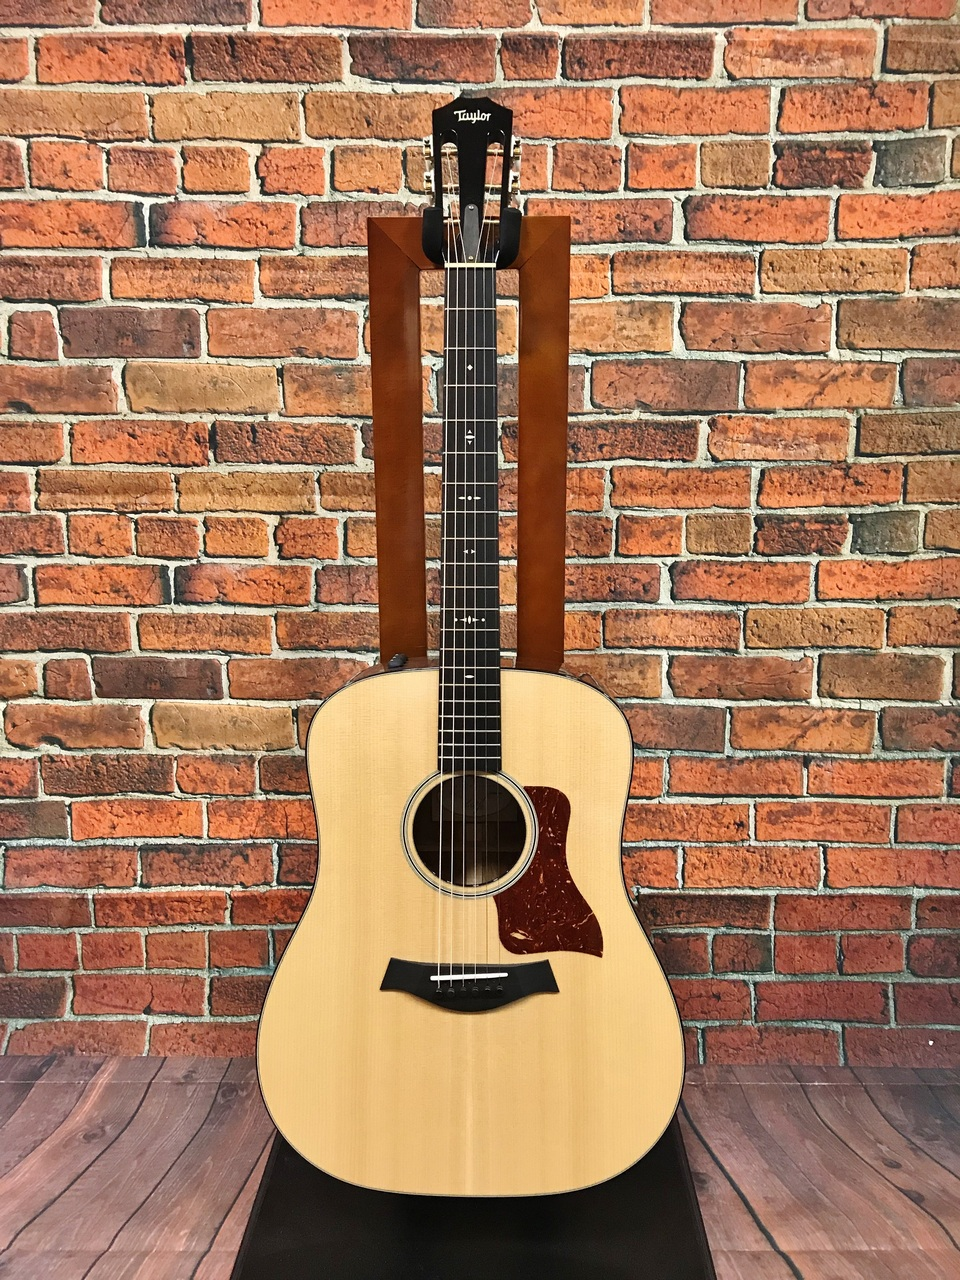 Taylor 510e ES2 [used beauty products] [Made in 2016]